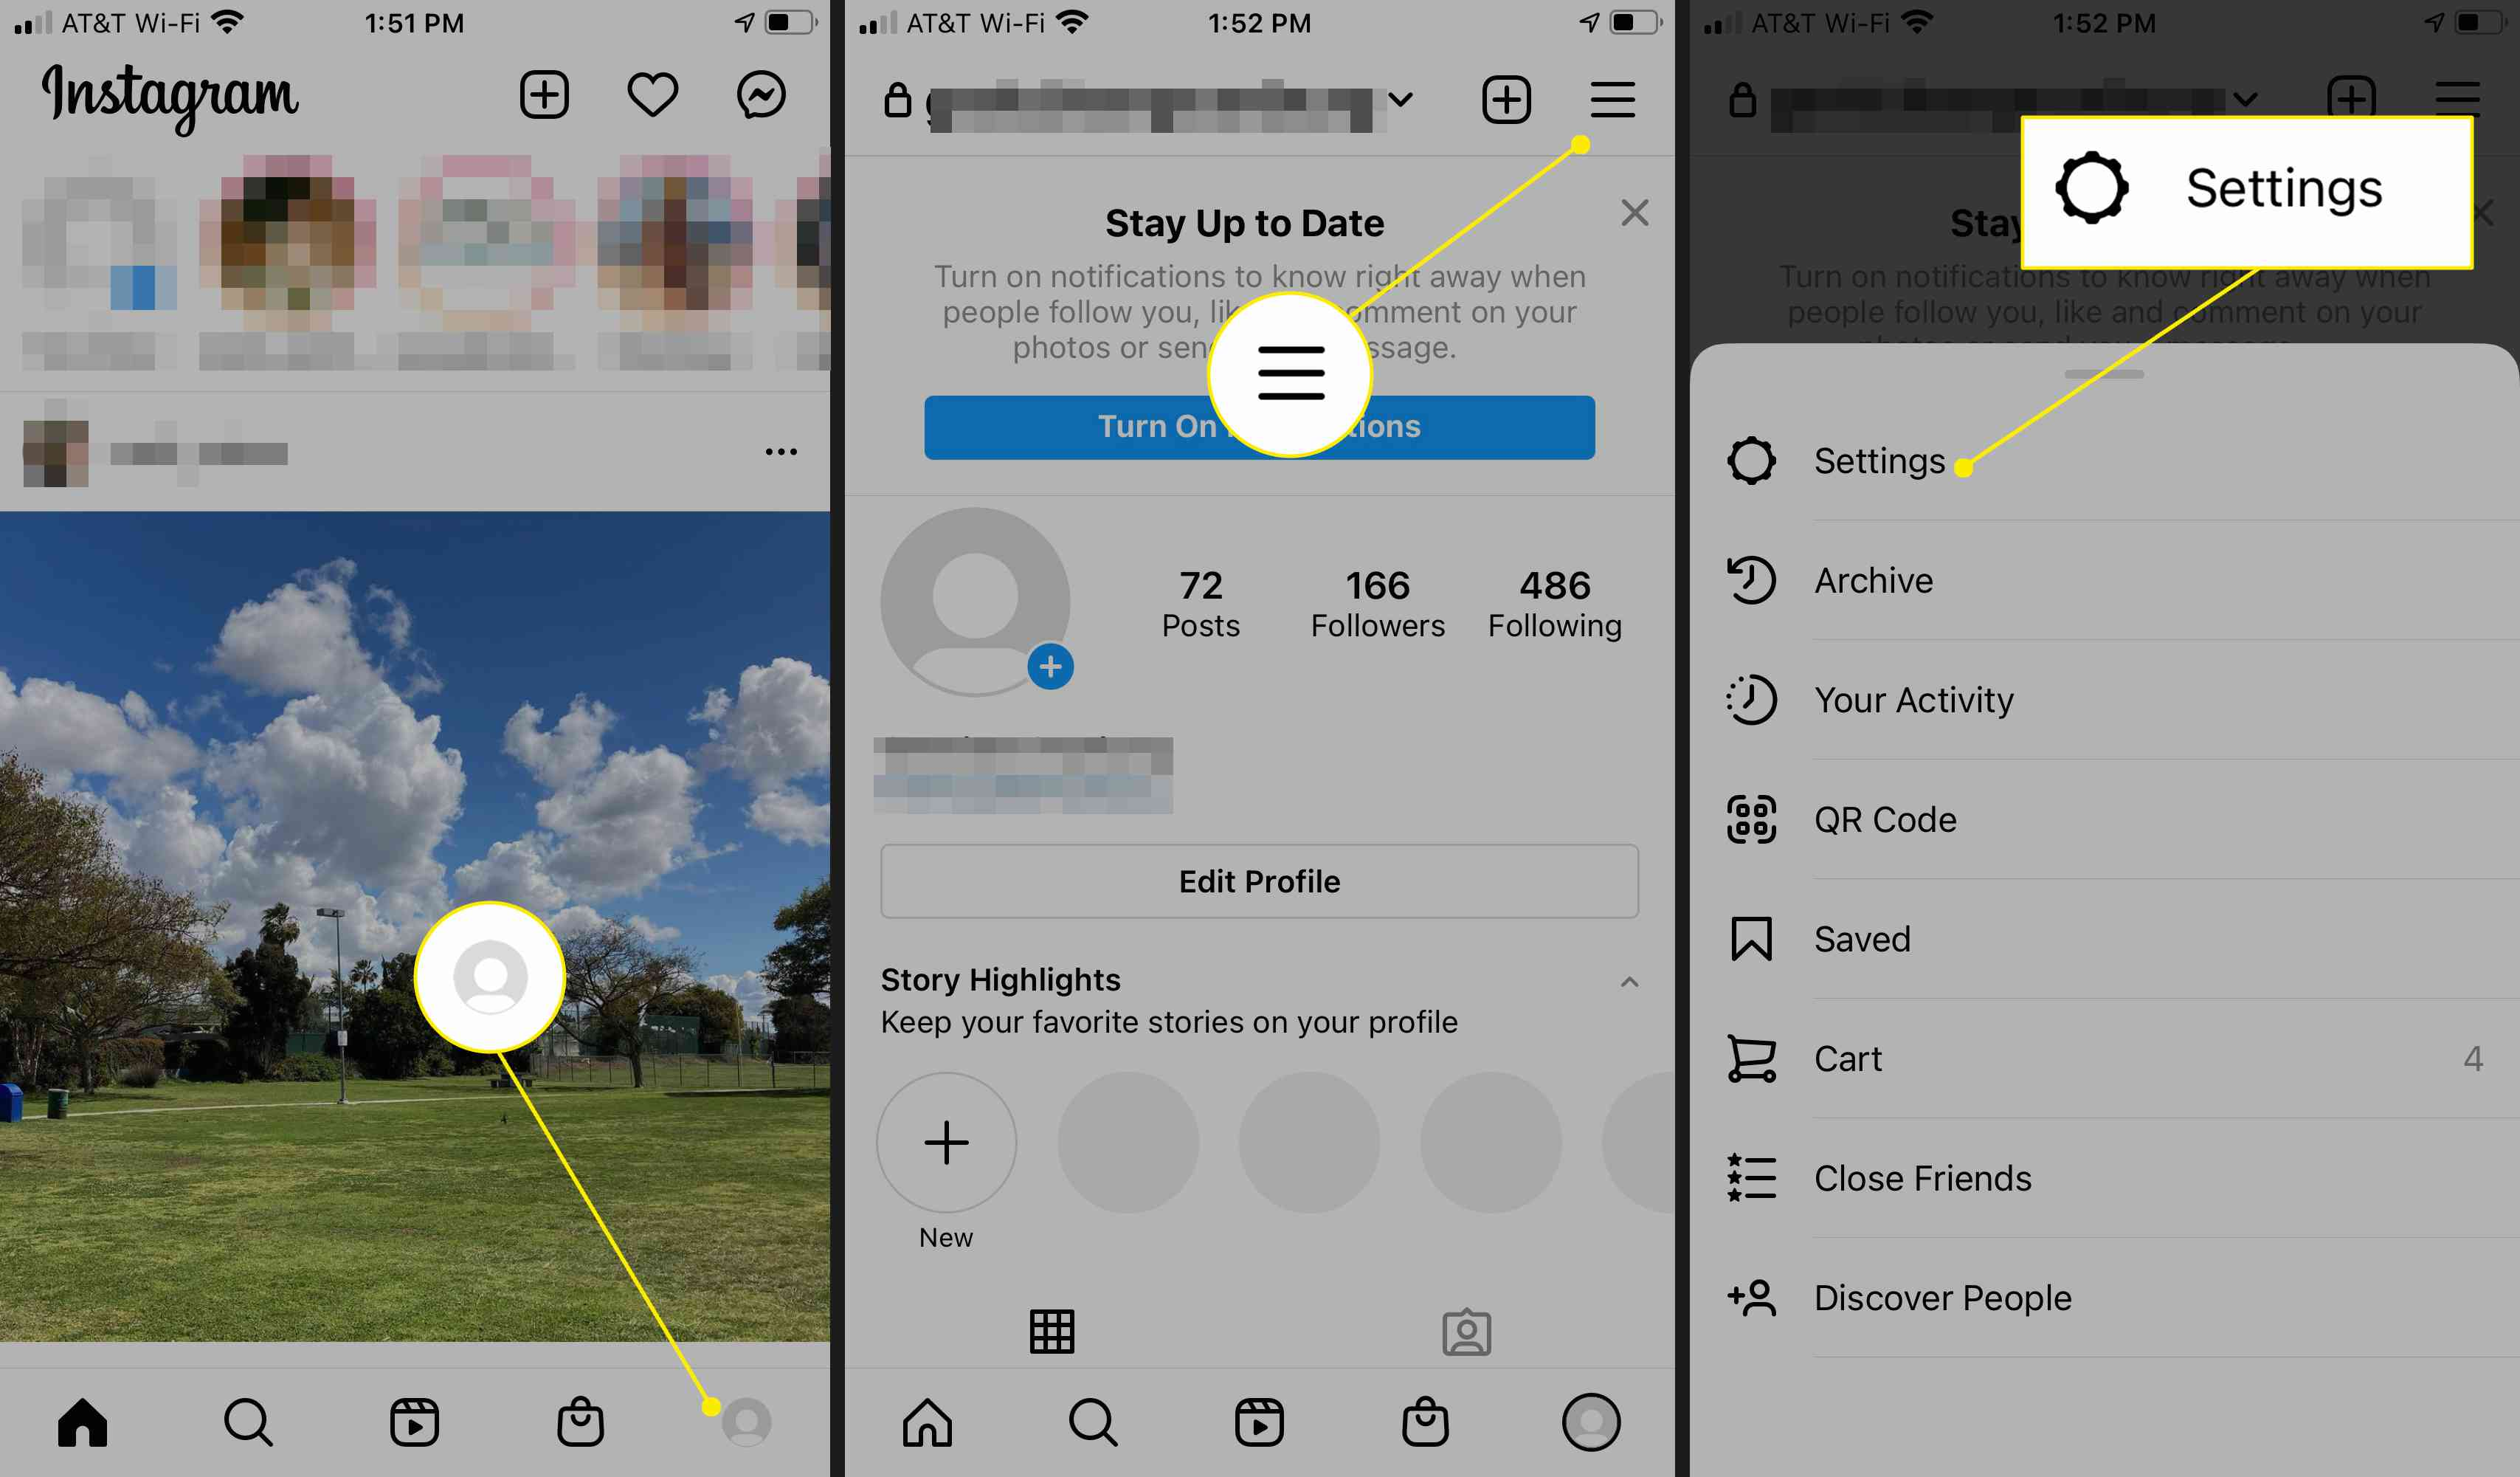 Instagram app's profile icon, menu, and settings highlighted